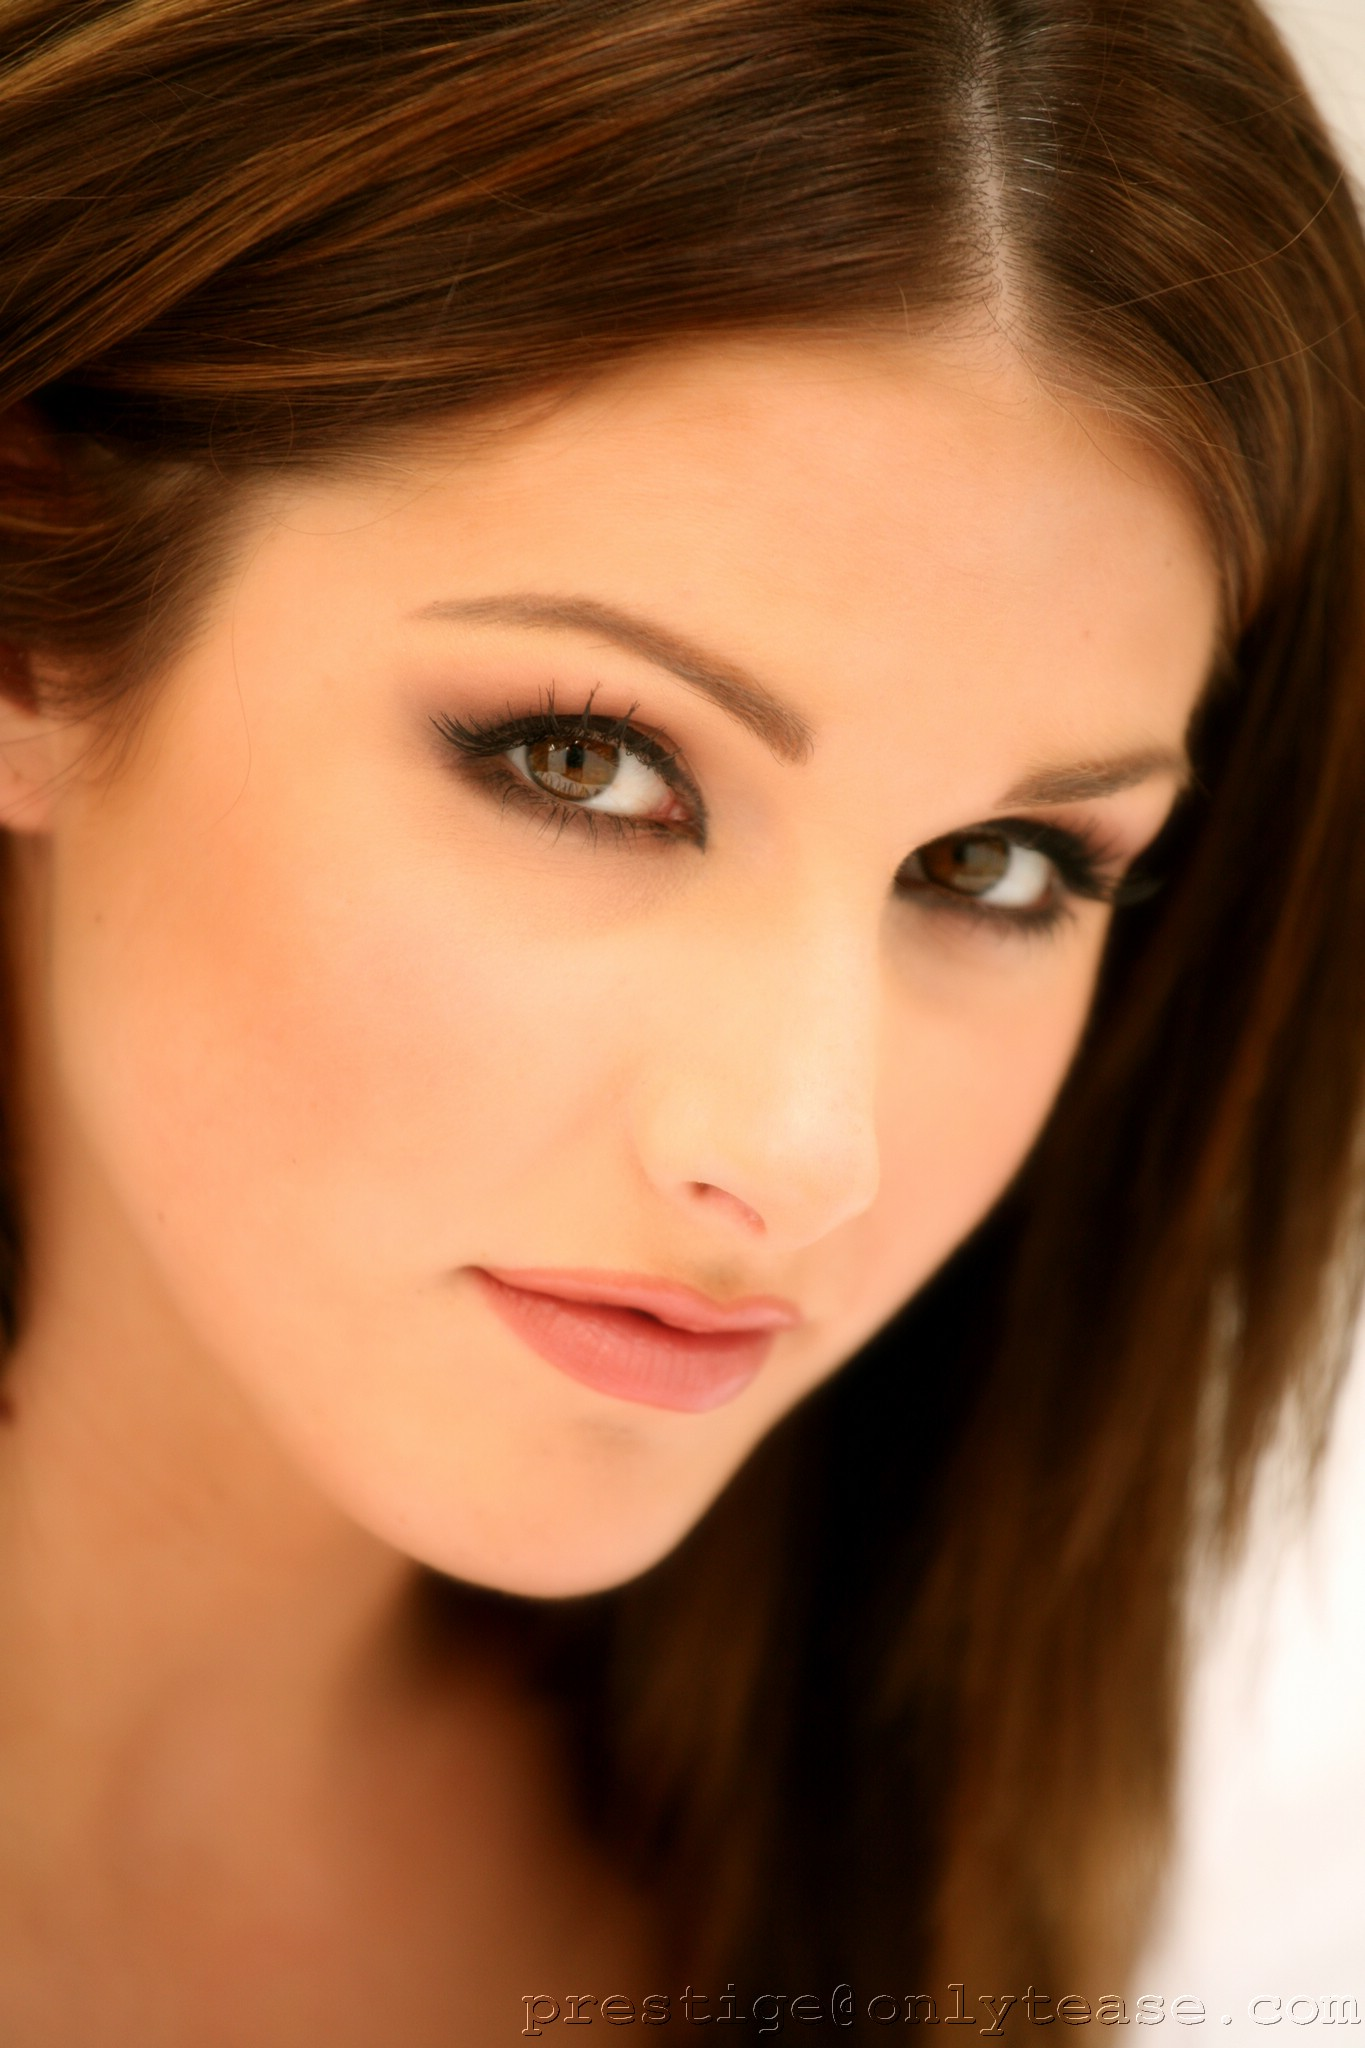 from Brody lucy pinder xxx picture